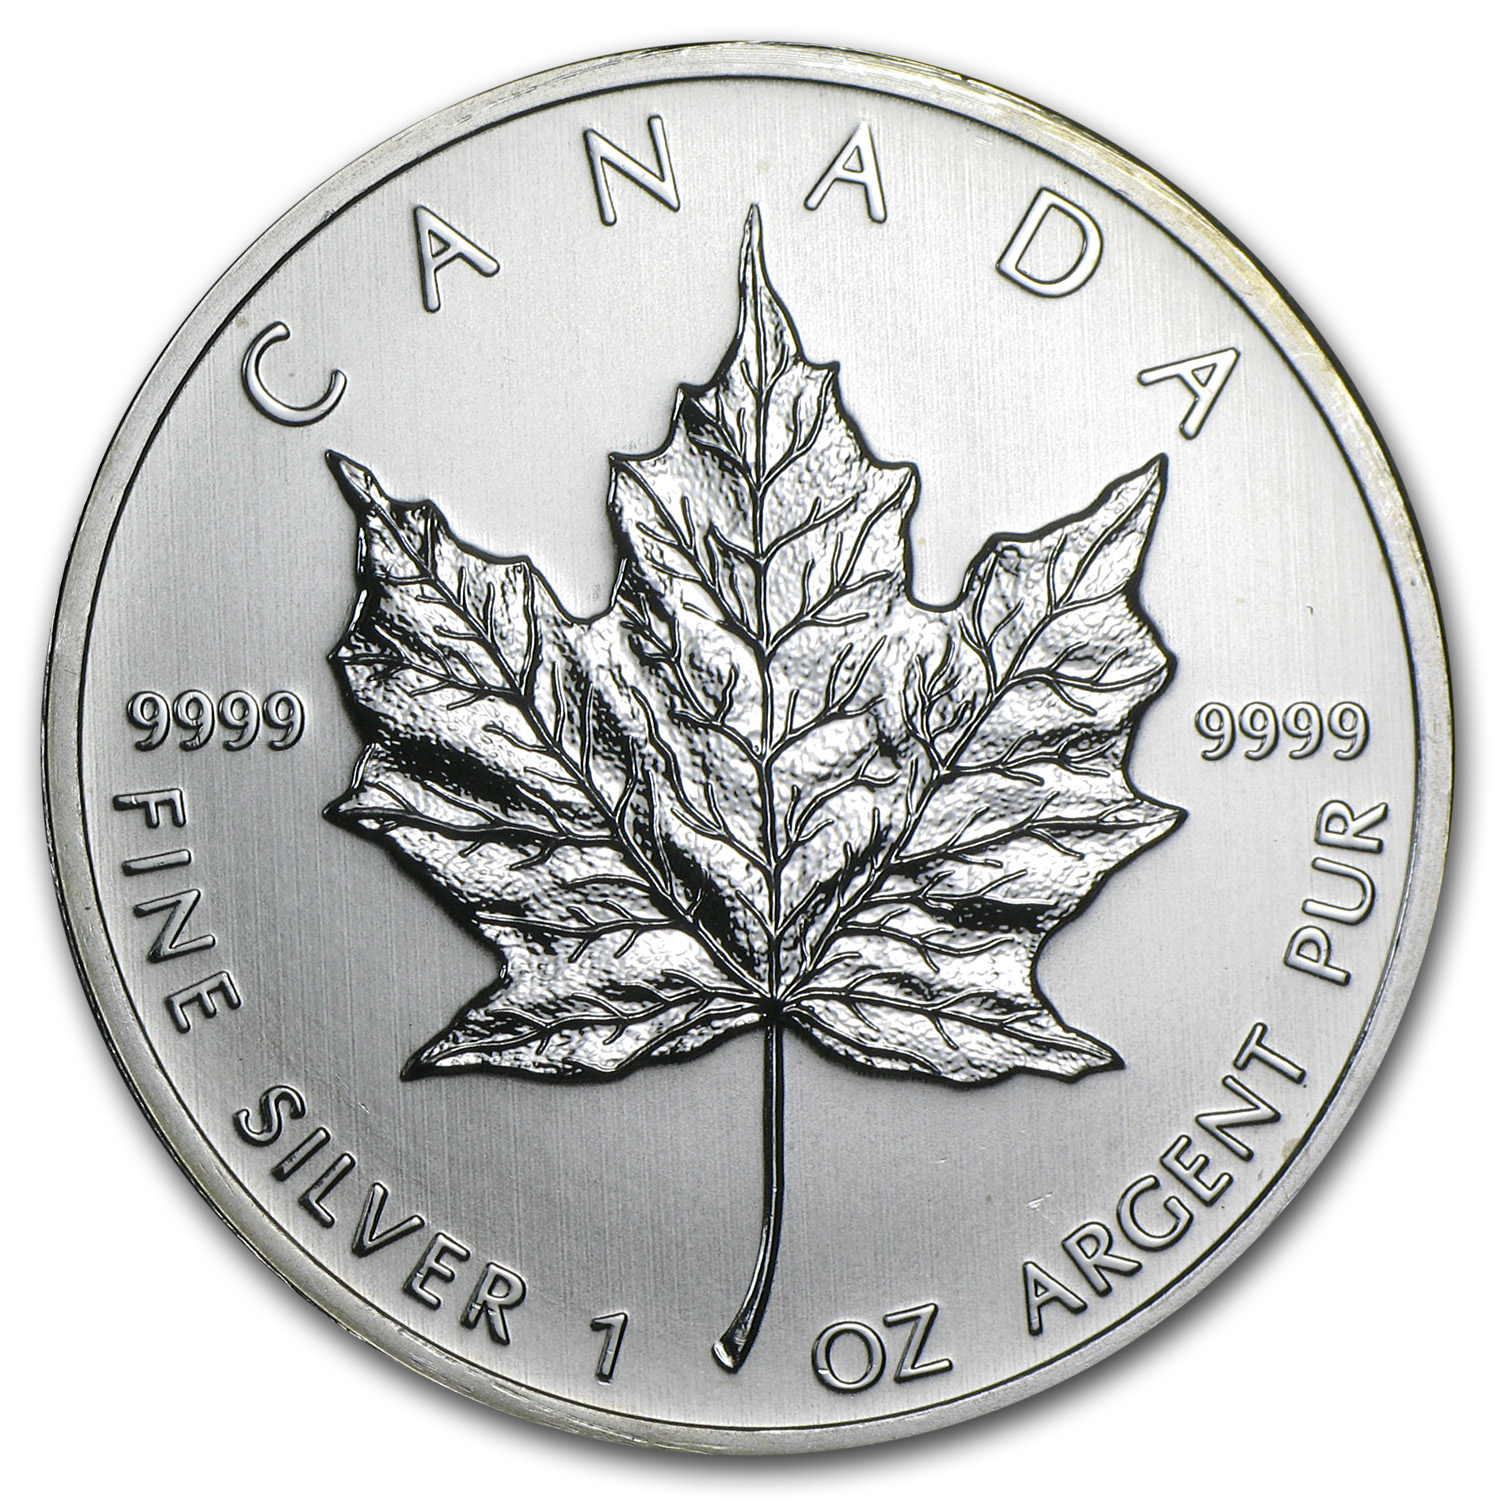 2010 Canada 1 oz Silver Maple Leaf BU